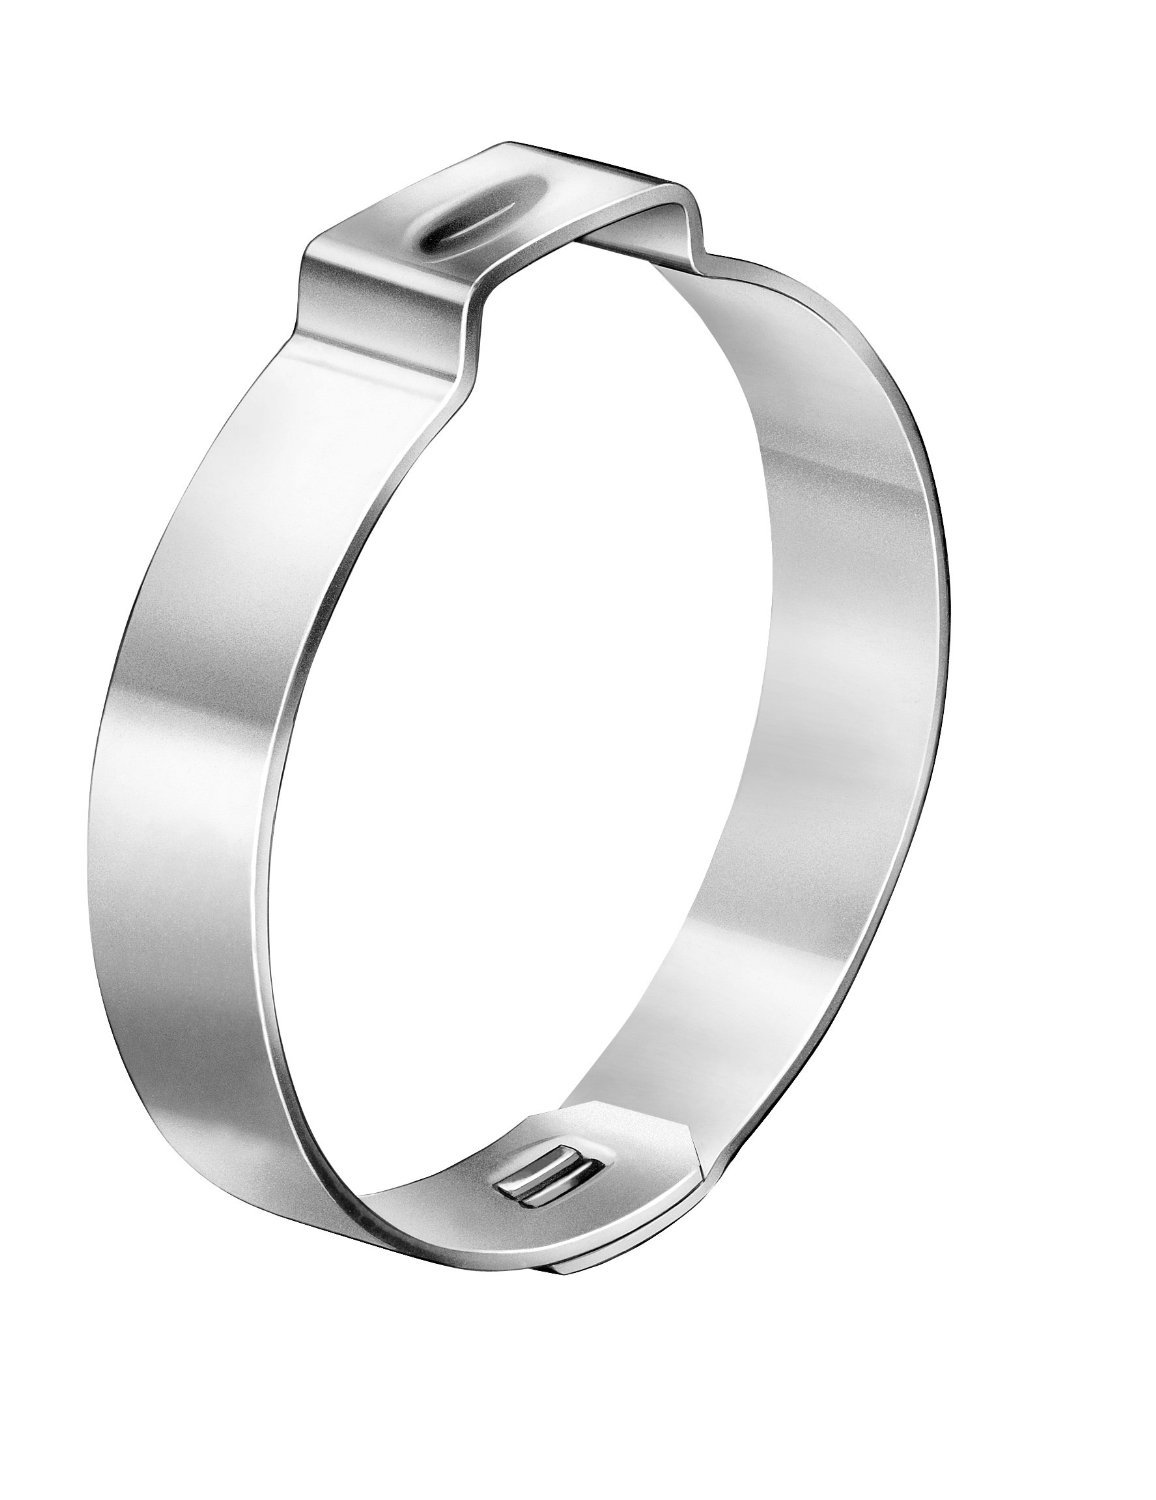 Genuine Oetiker 10500354 Ranking TOP16 Zinc-Plated Steel Hose Clamp Mechanical In with